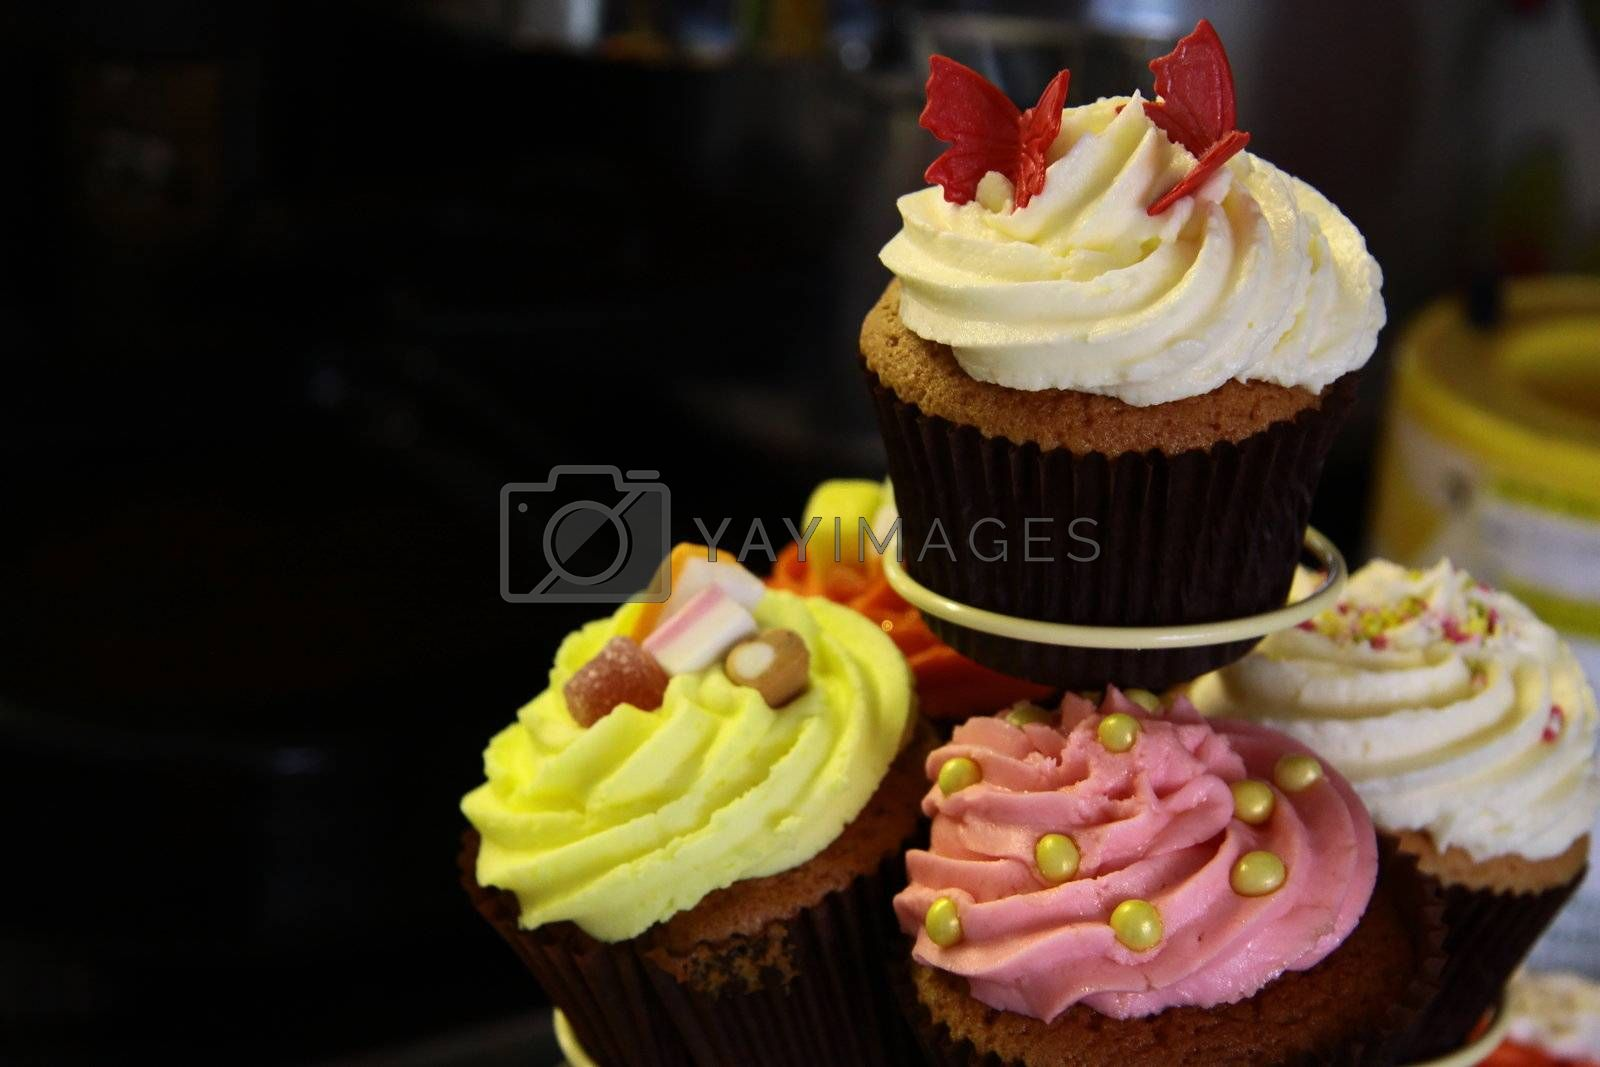 assortment of delicious fancy cupcakes on a cake stand